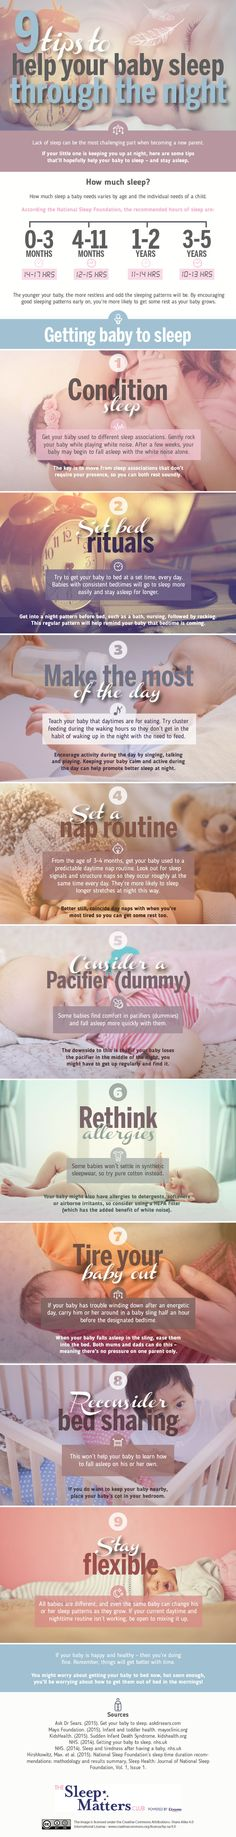 Looking for baby care hacks to make your parenting life easier? New parents or seasoned, this list of baby care hacks will help all parents. Baby Sleep Through Night, Sleeping Through The Night, Baby Sleep Schedule, Newborn Schedule, Baby Checklist, Help Baby Sleep, Toddler Sleep, After Baby, Baby Development